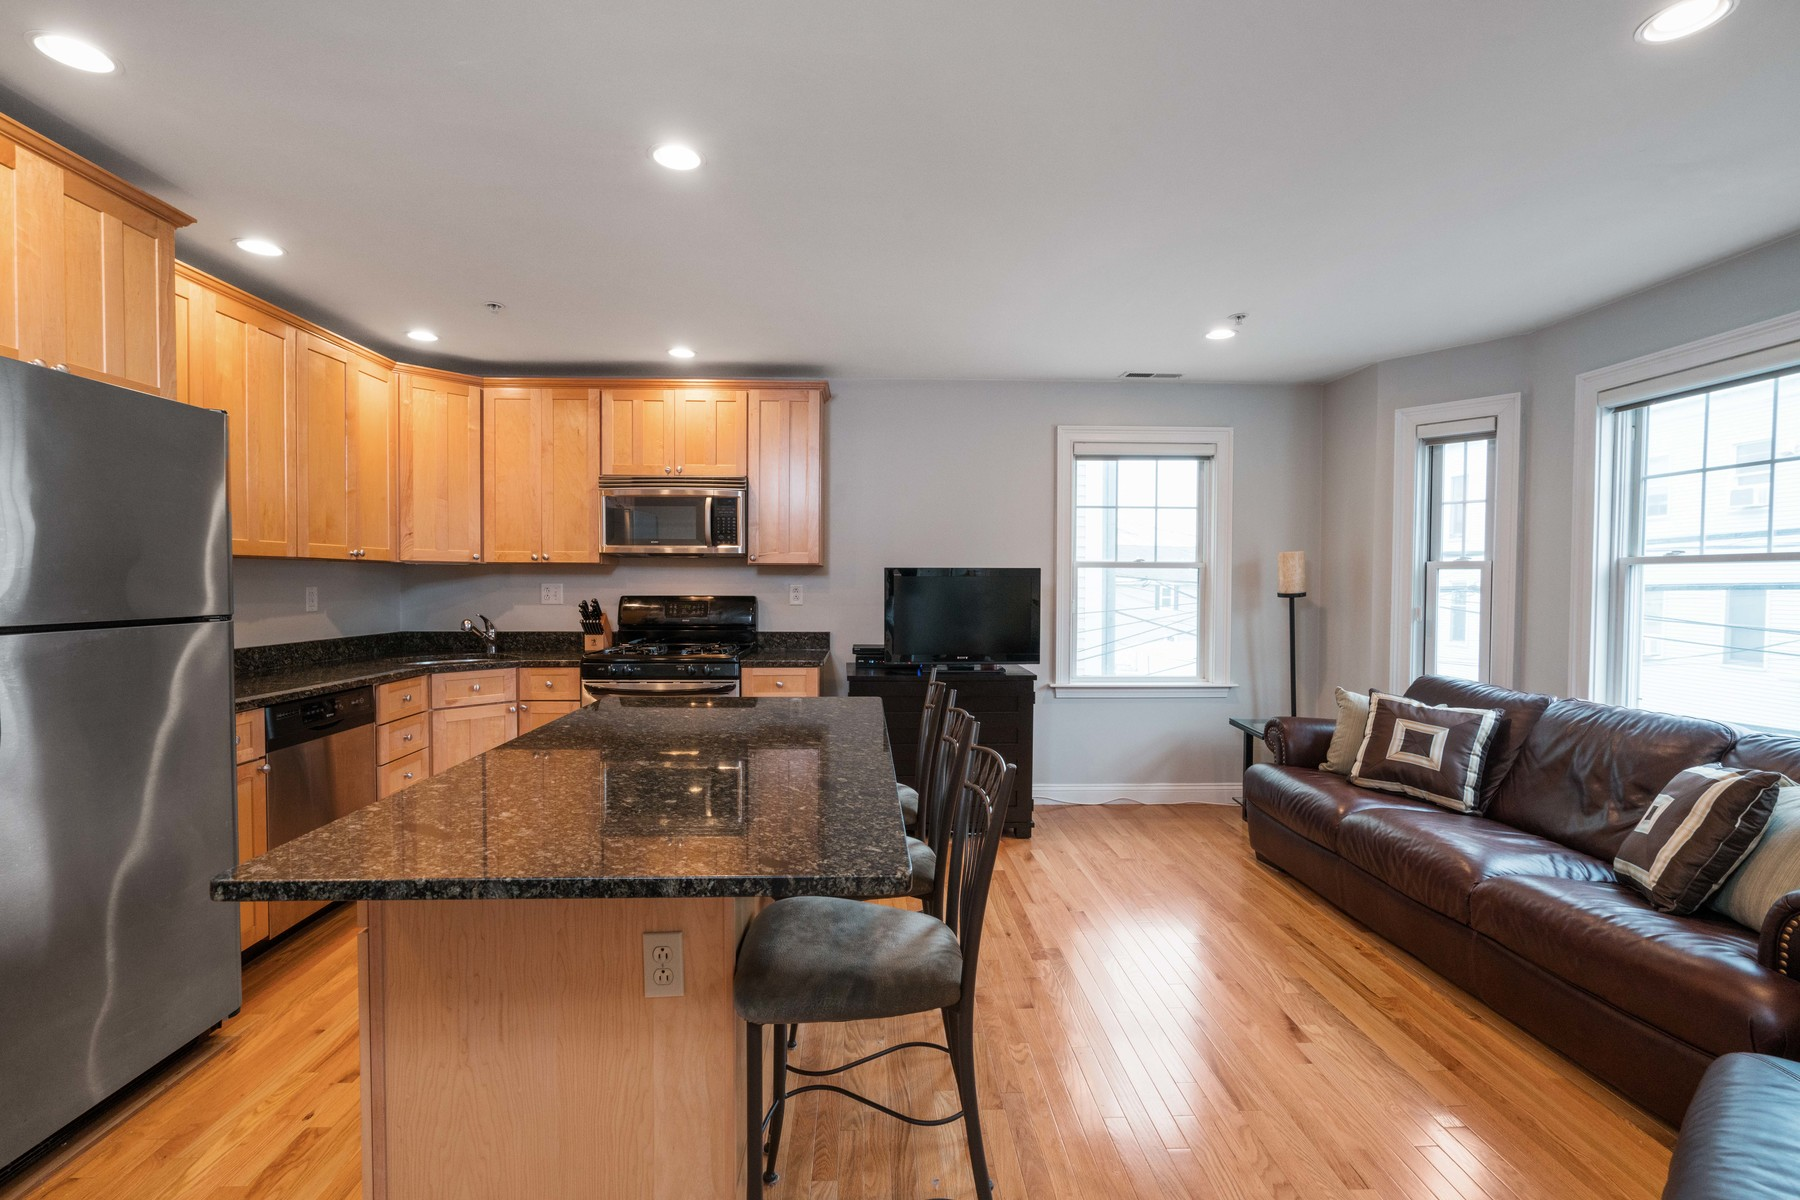 Copropriété pour l Vente à City living made easy! Bright and sunny condo with private parking and outdoor s 134-136 West 9th St - Unit 4 Boston, Massachusetts, 02127 États-Unis